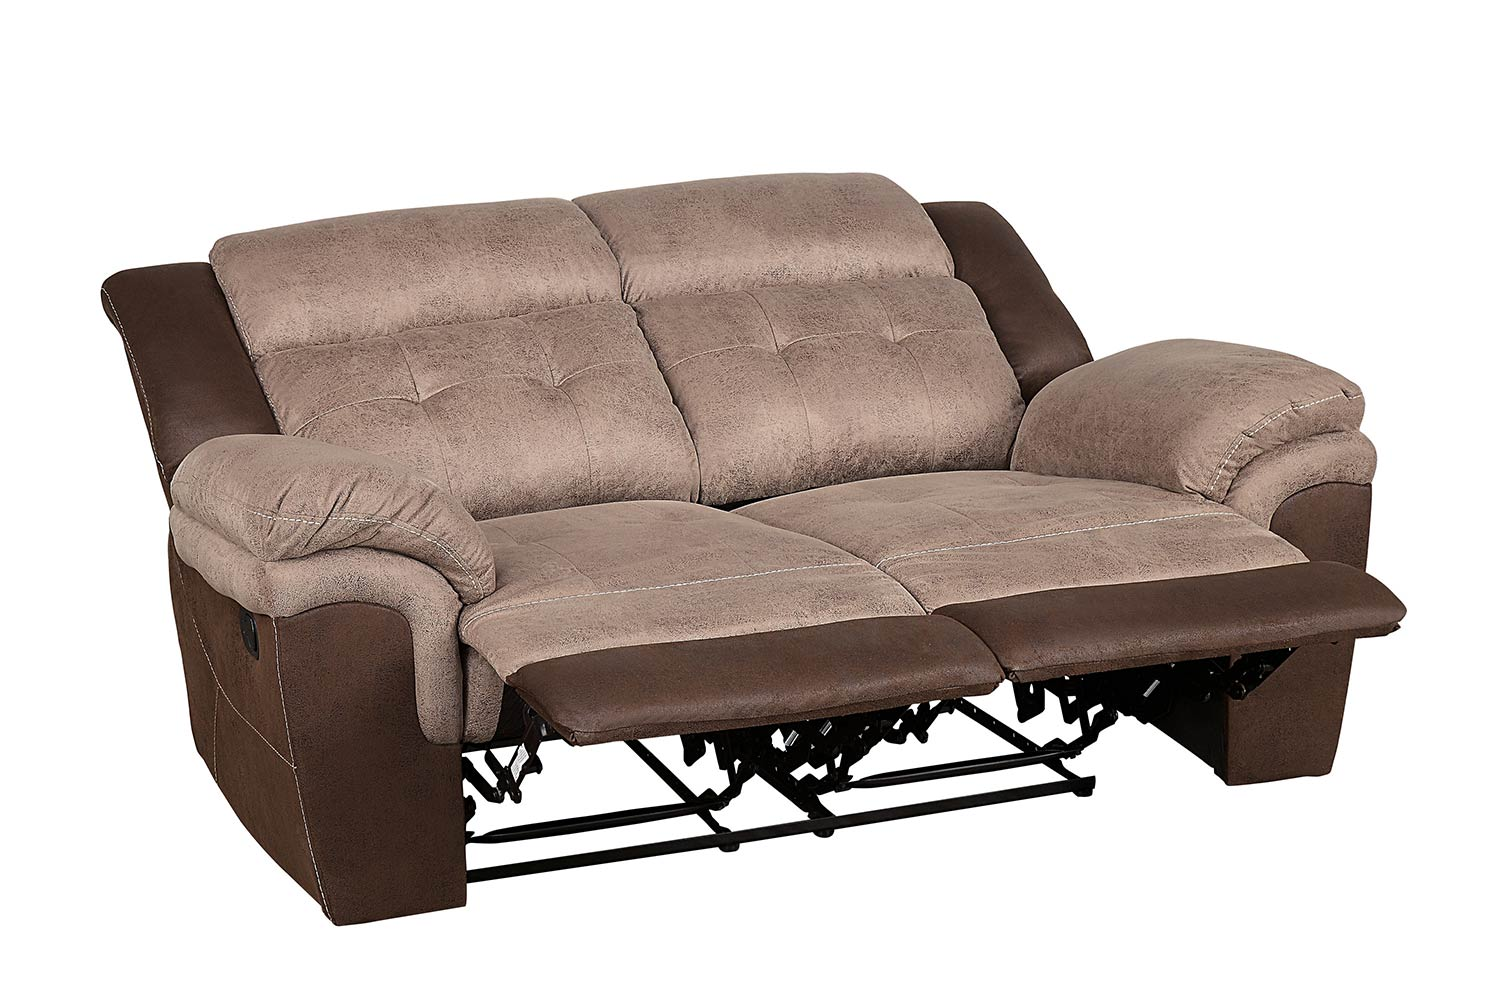 Homelegance Chai Double Reclining Love Sea - Brown and dark brown polished microfiber